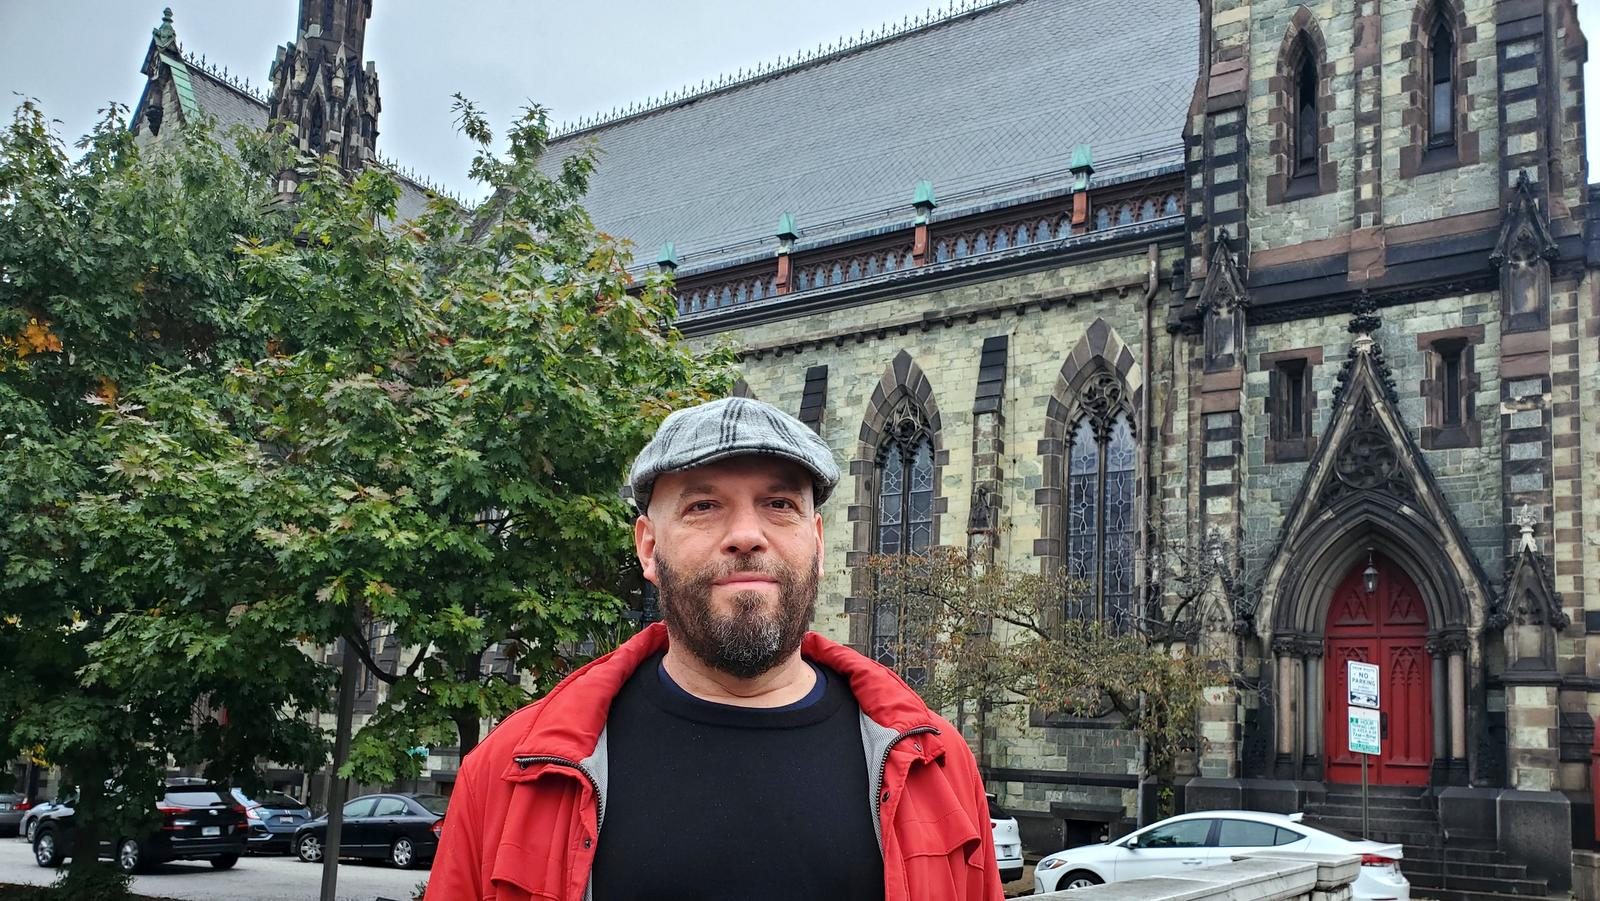 SILENCED: Drew Rieger stands next to United Methodist Church he wanted to testify about. (Ed Gunts)